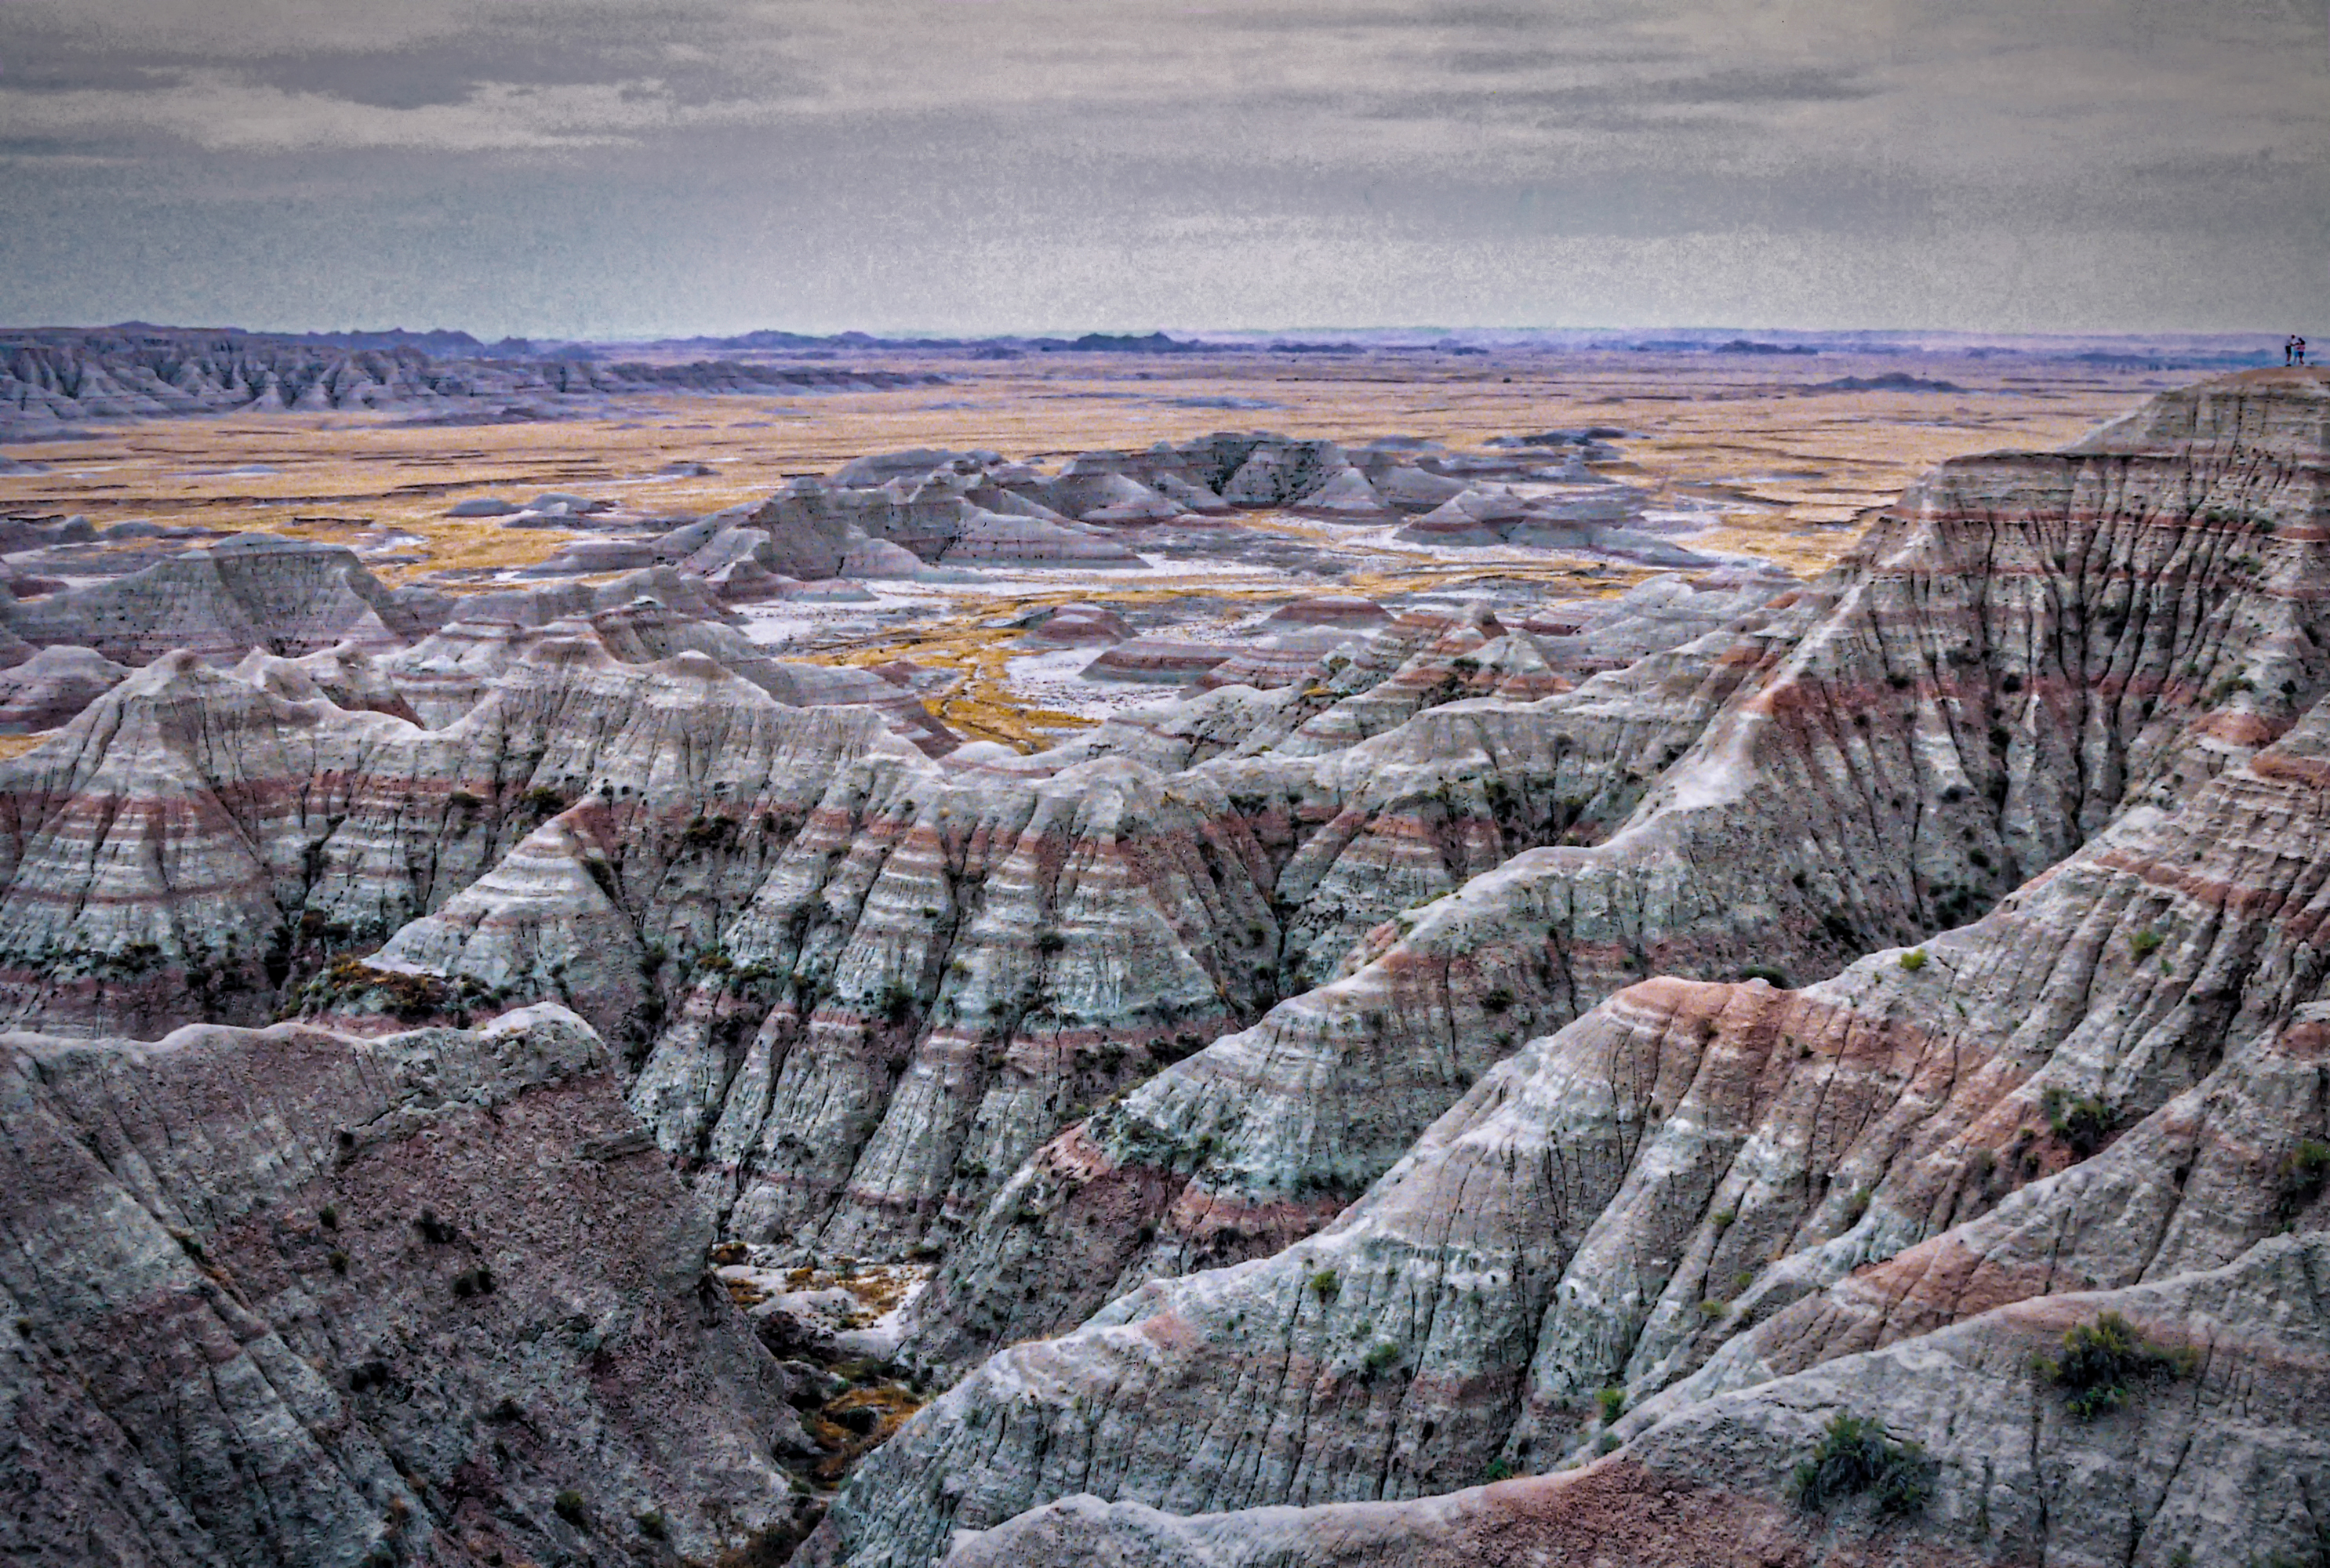 moonscape author bloy bruce badlands national p